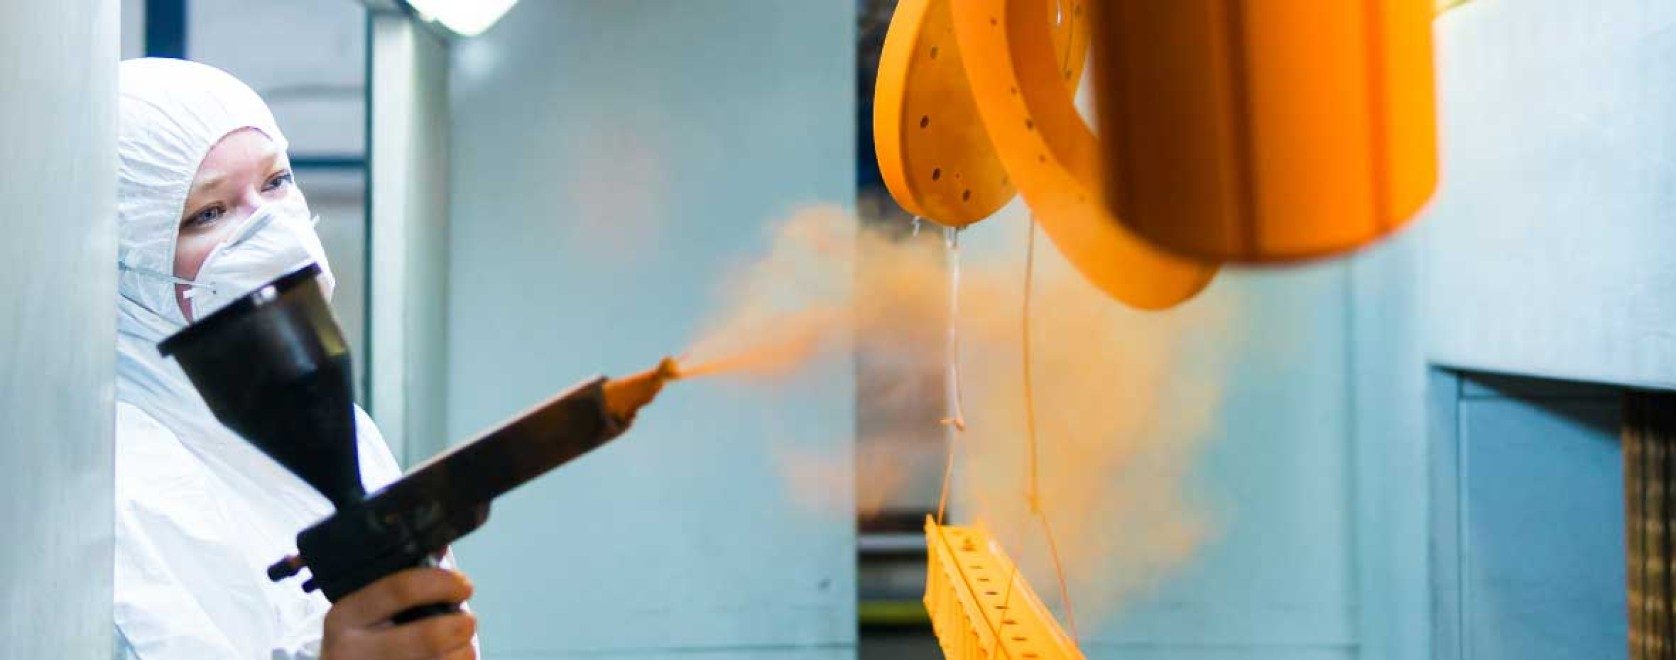 PPE for Powder Coating - Stay Protected While Powder Coating